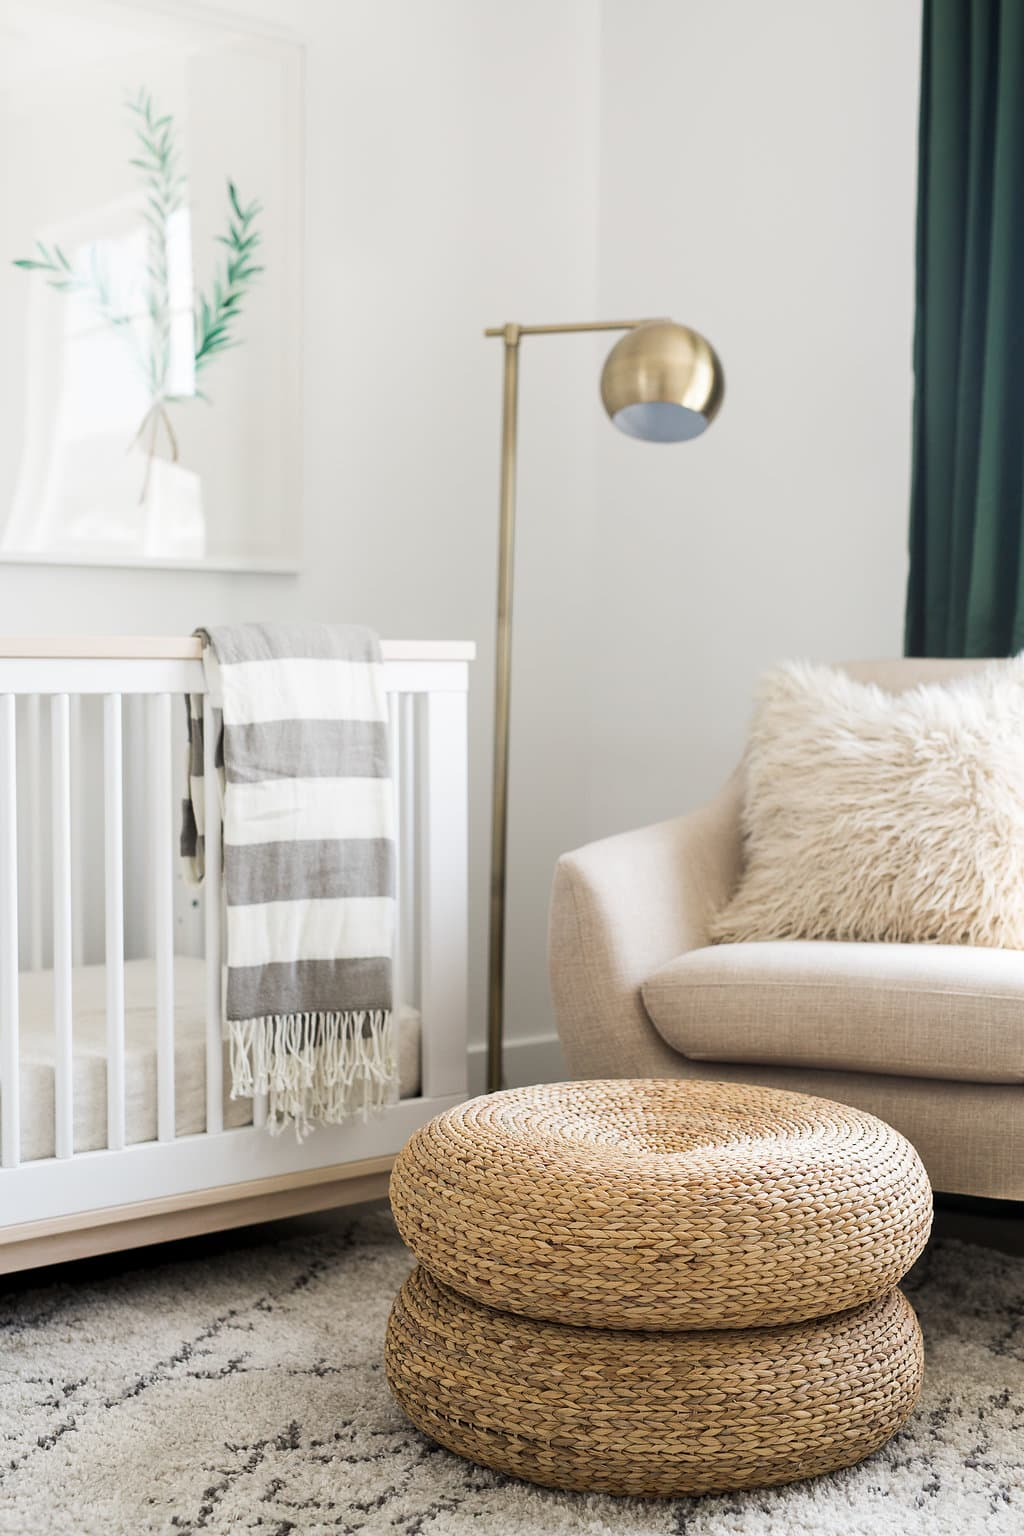 this is a iron horse model nursery by Akin Design Studio